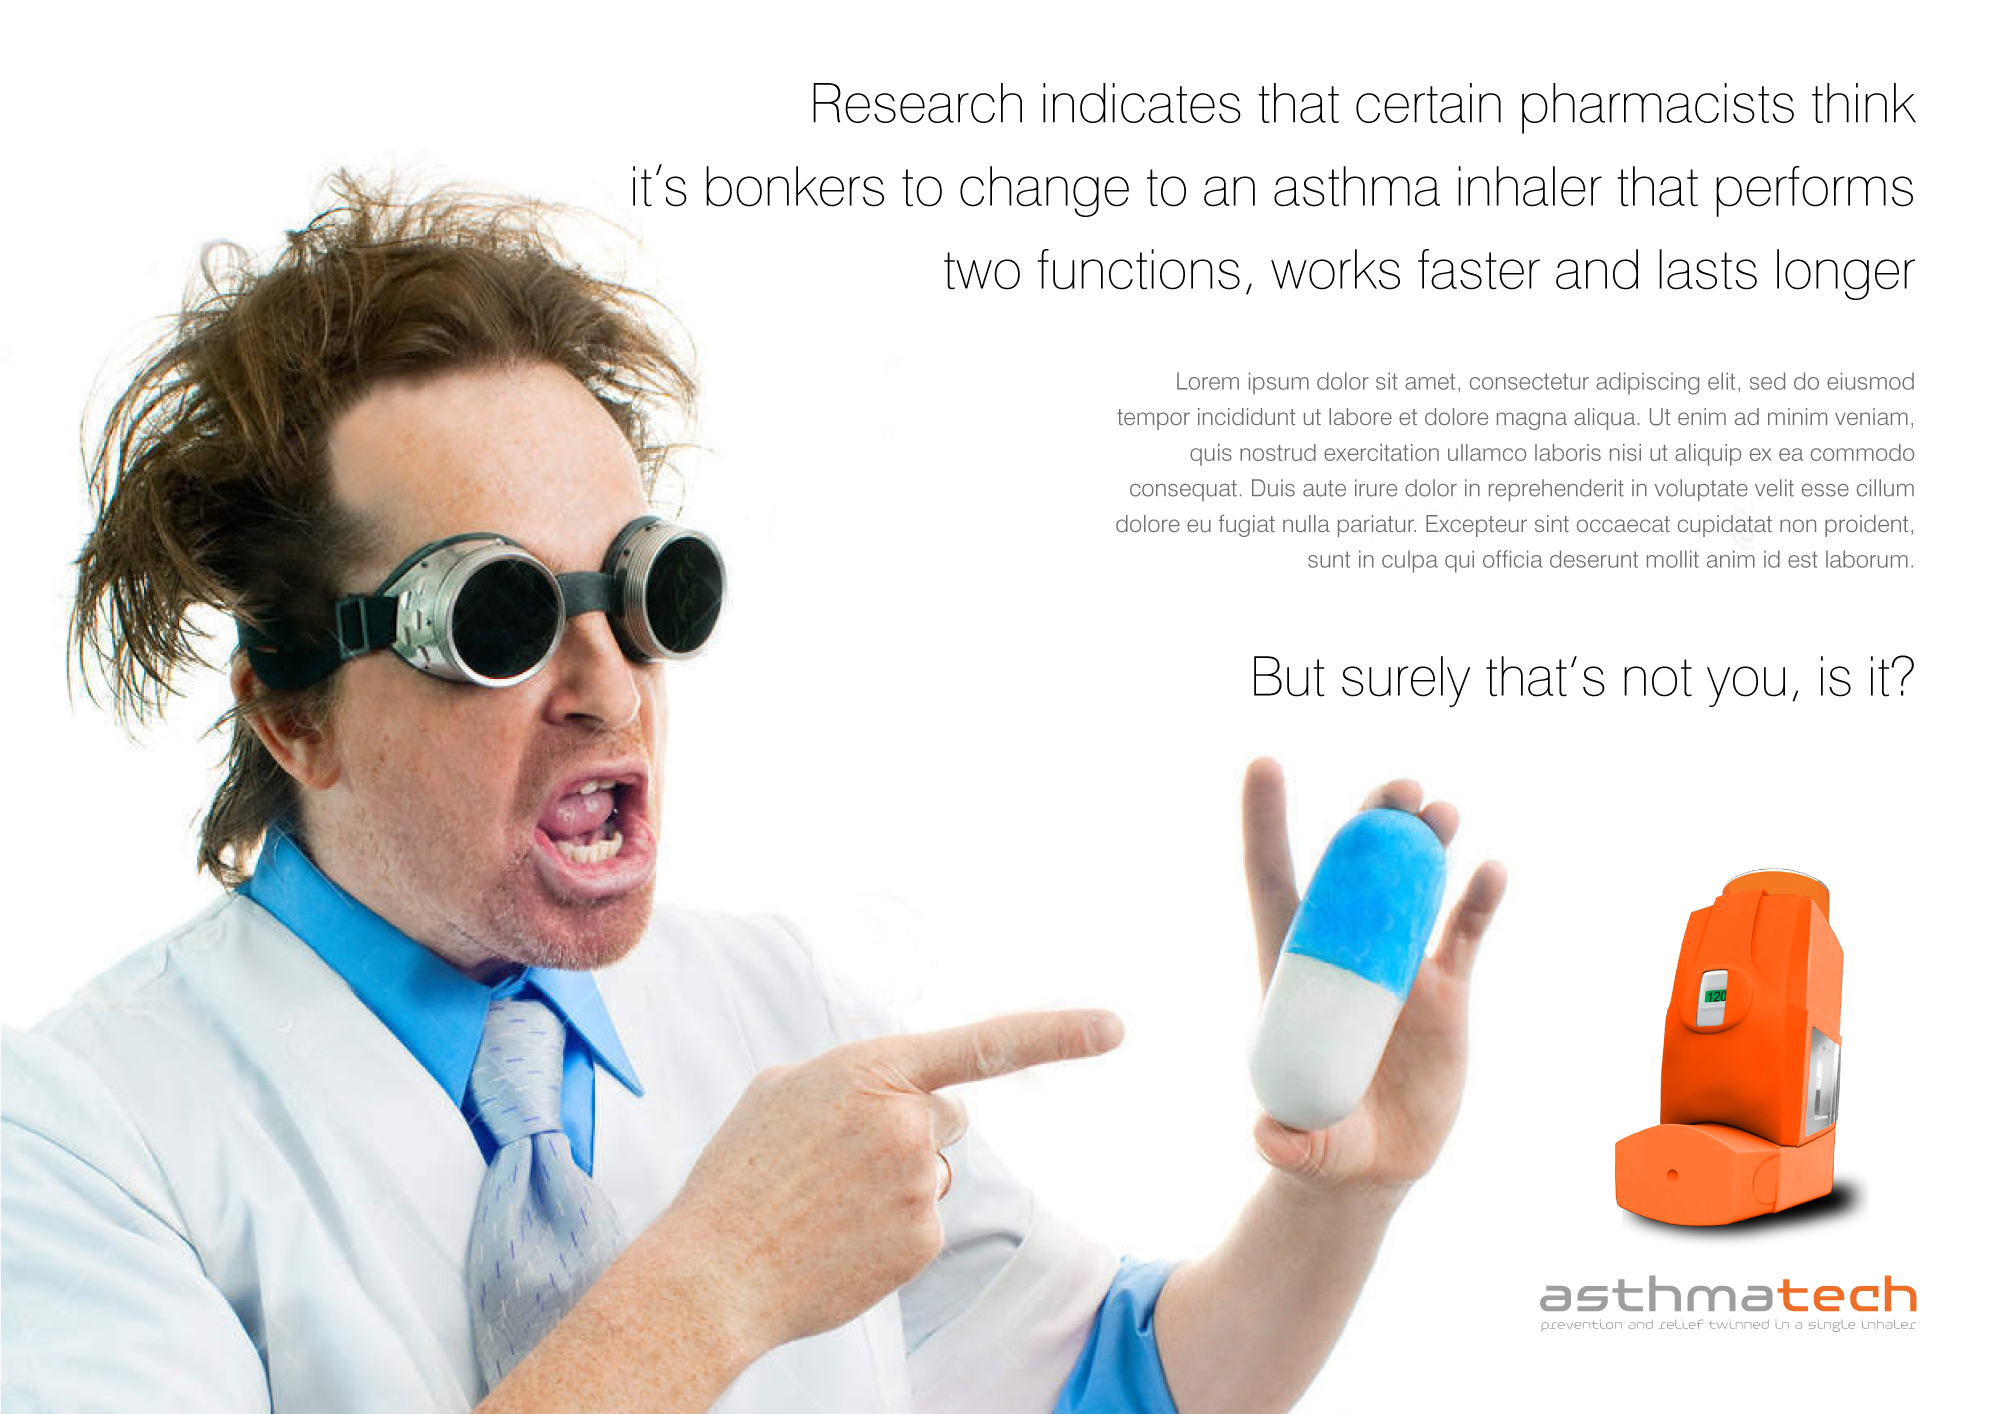 04_crazy_asthmatech_ad_concept